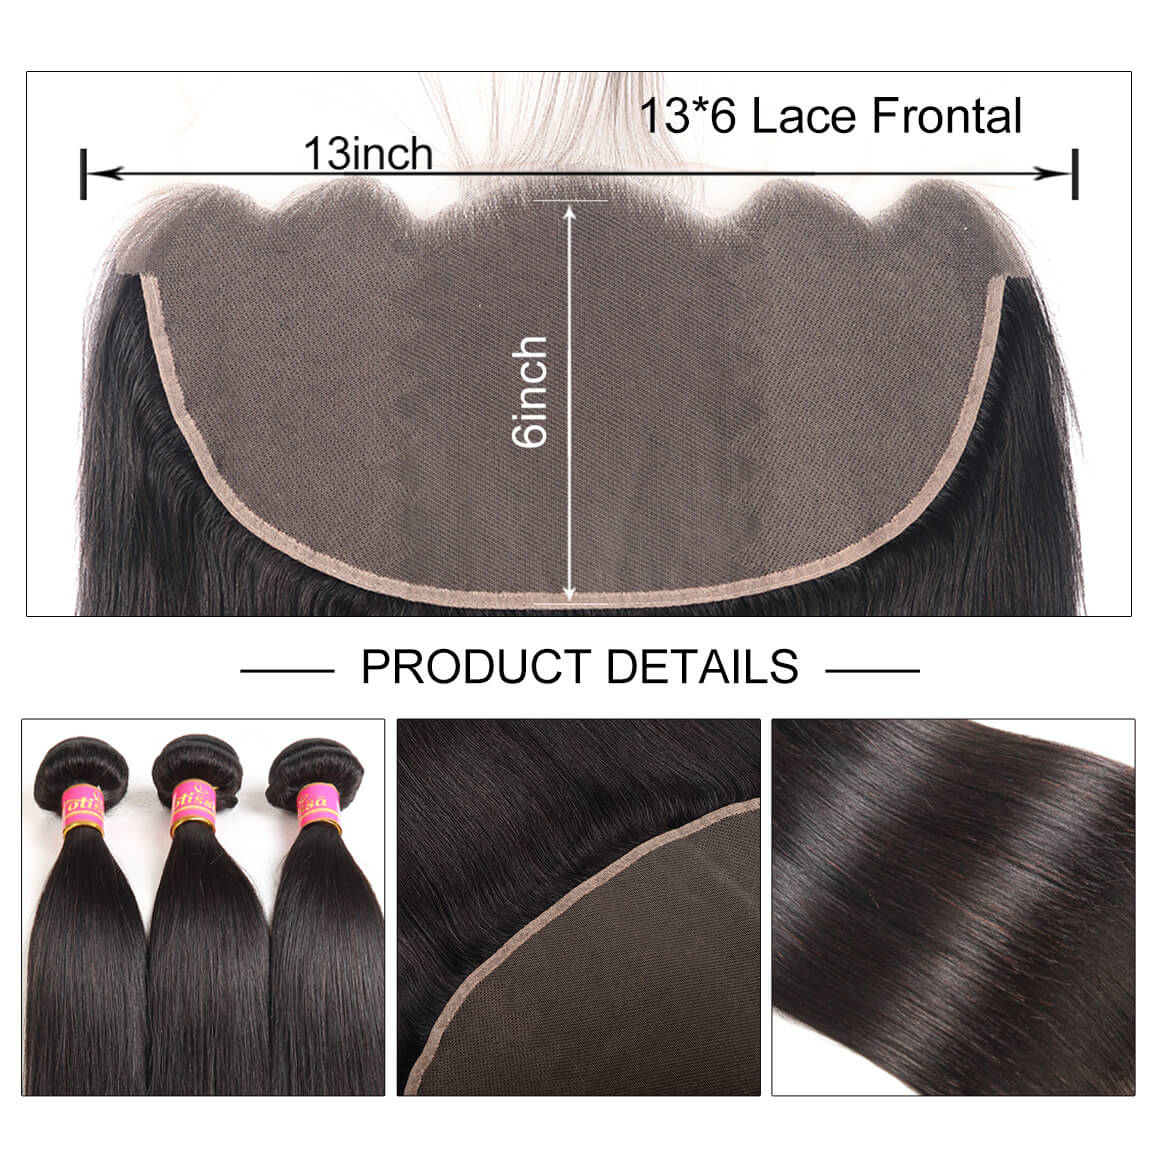 13*6 Lace Frontal Closure